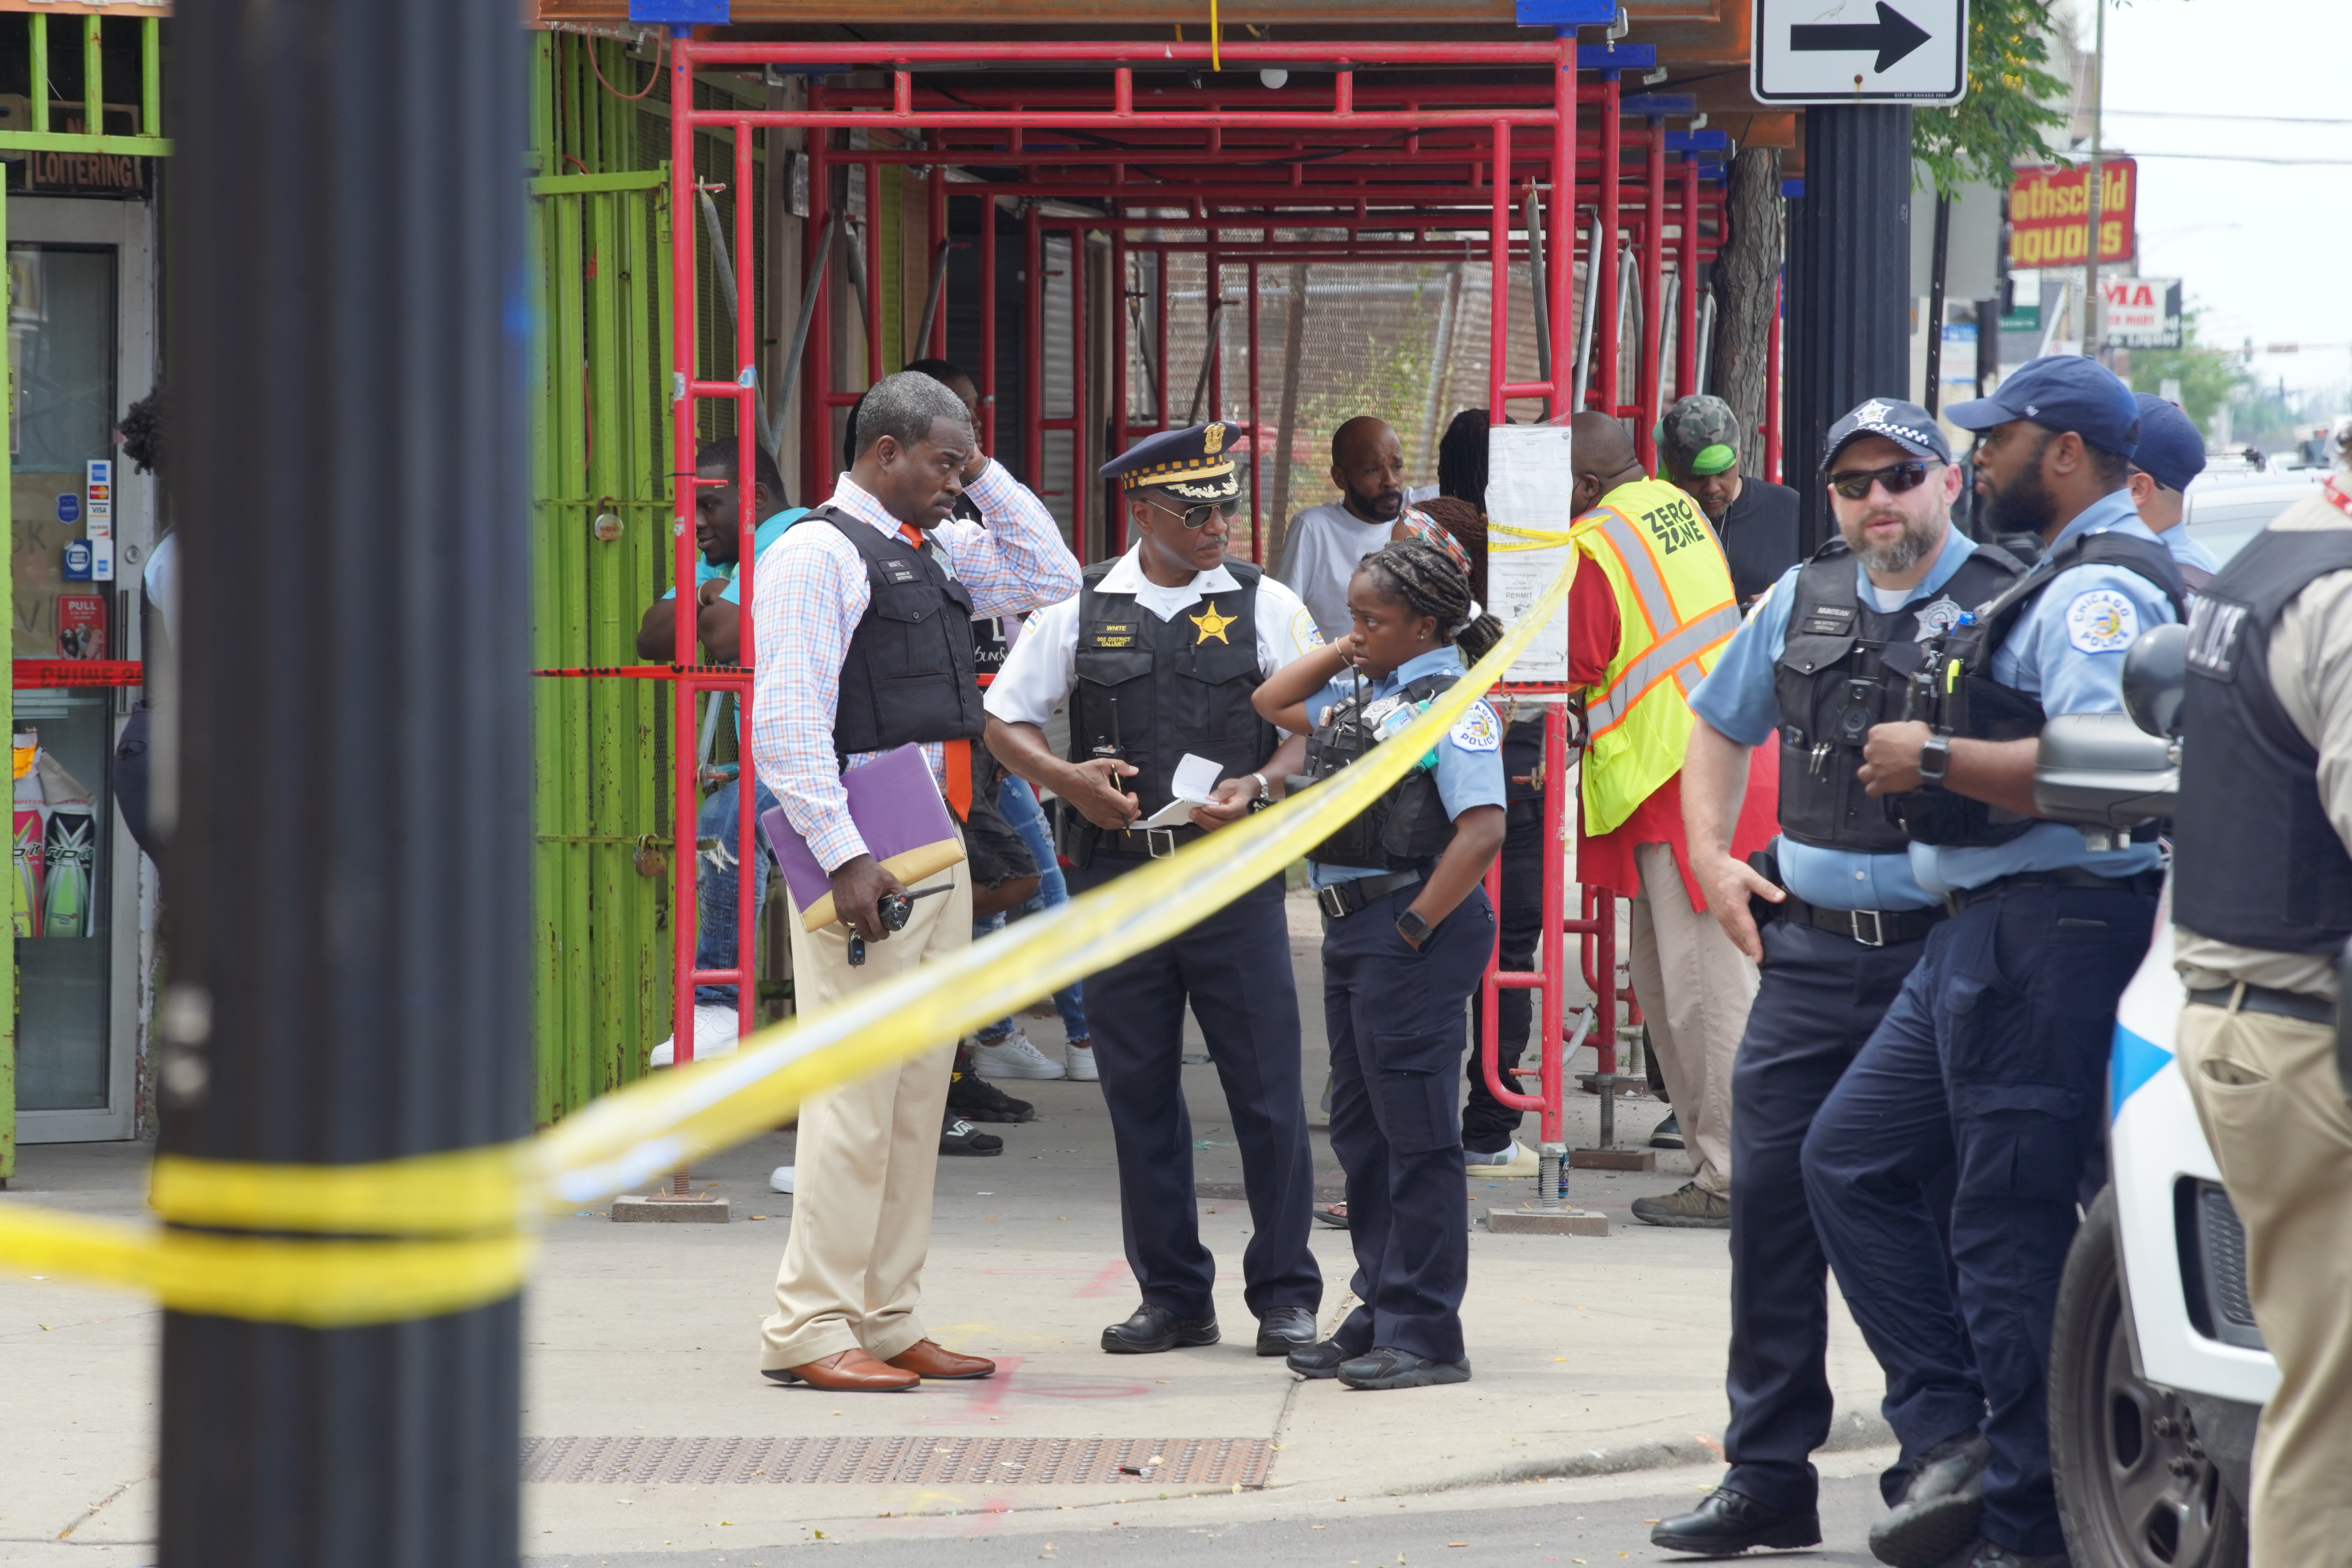 Police investigate at the site of a mass shooting Wednesday, July 14 in the 7900 block of South Justine Street.